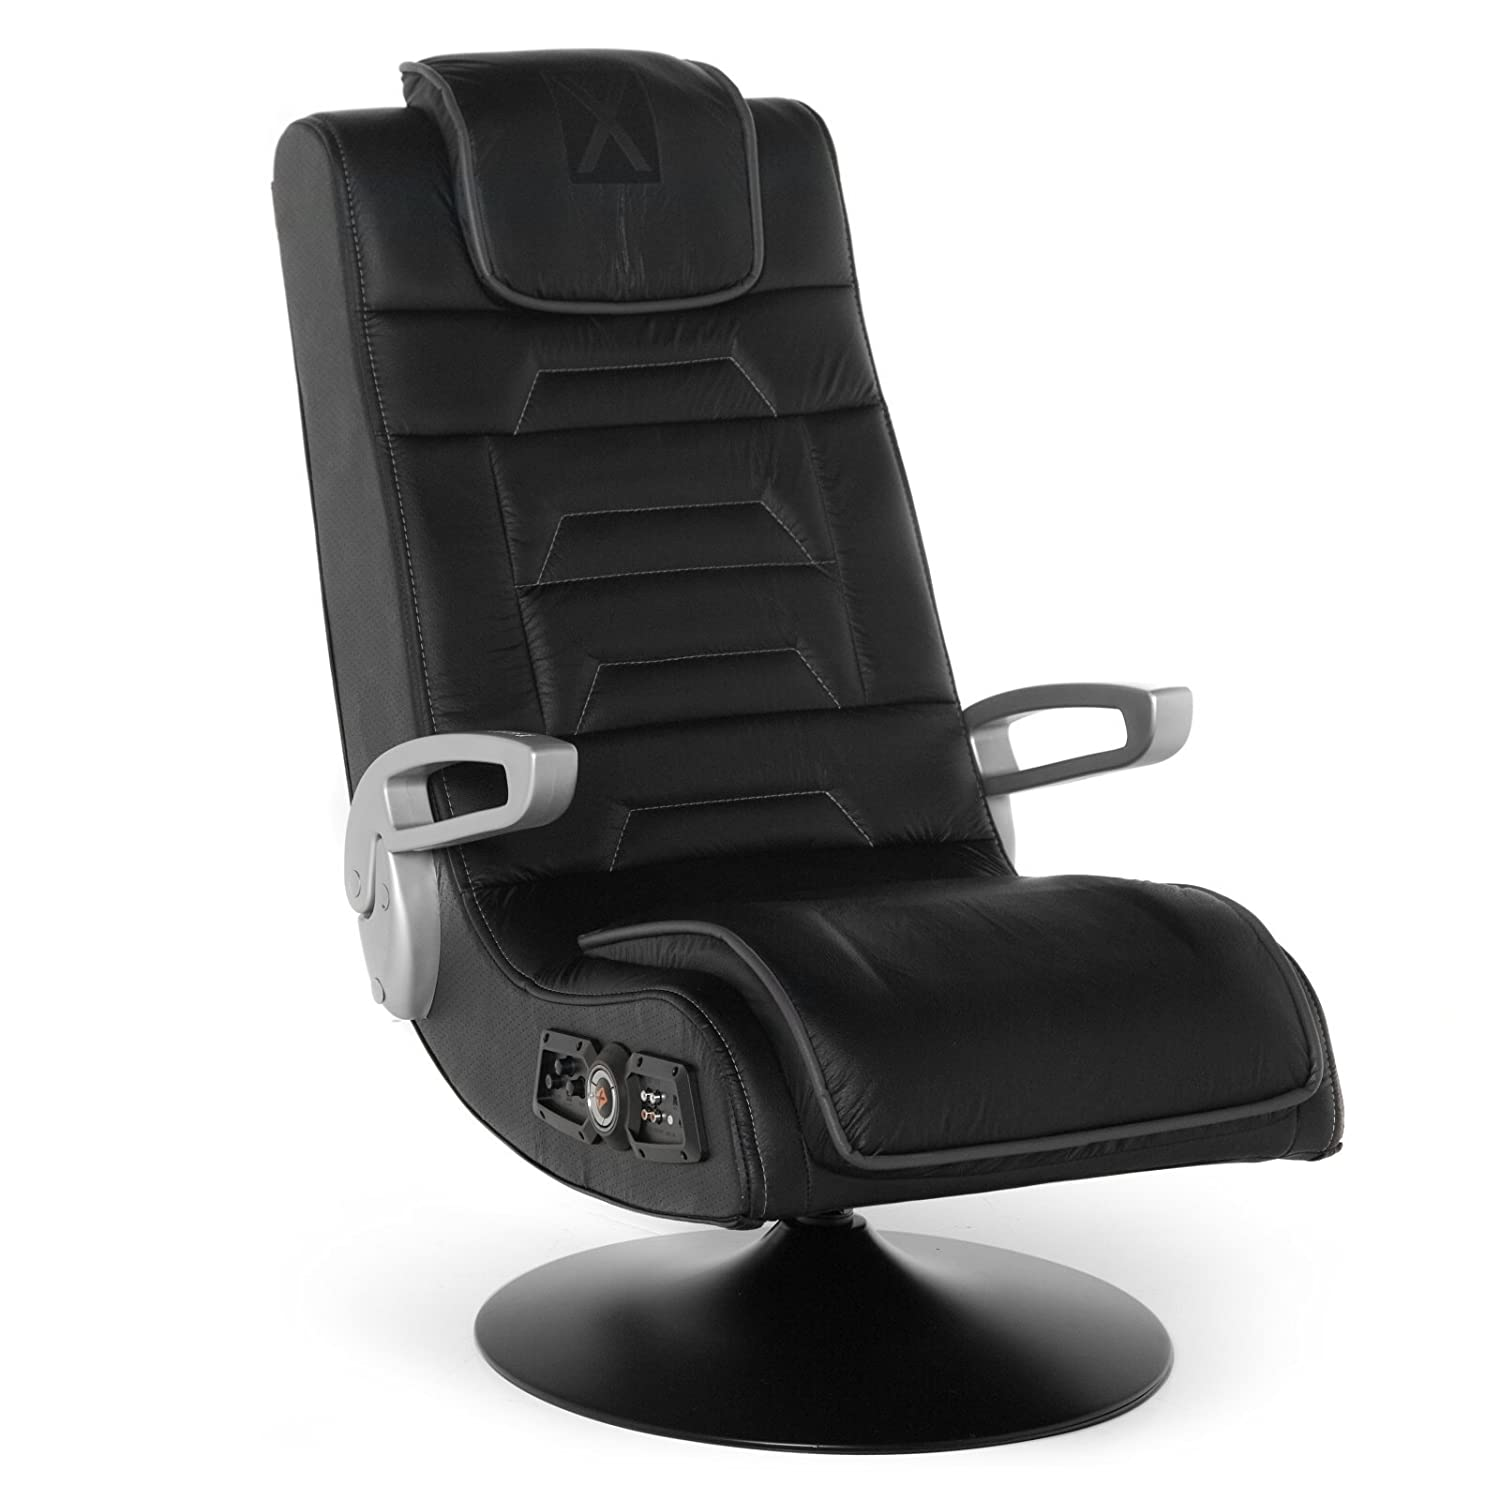 Gamer Chairs X Rocker Pro Review Are Gaming Chairs Still A Thing